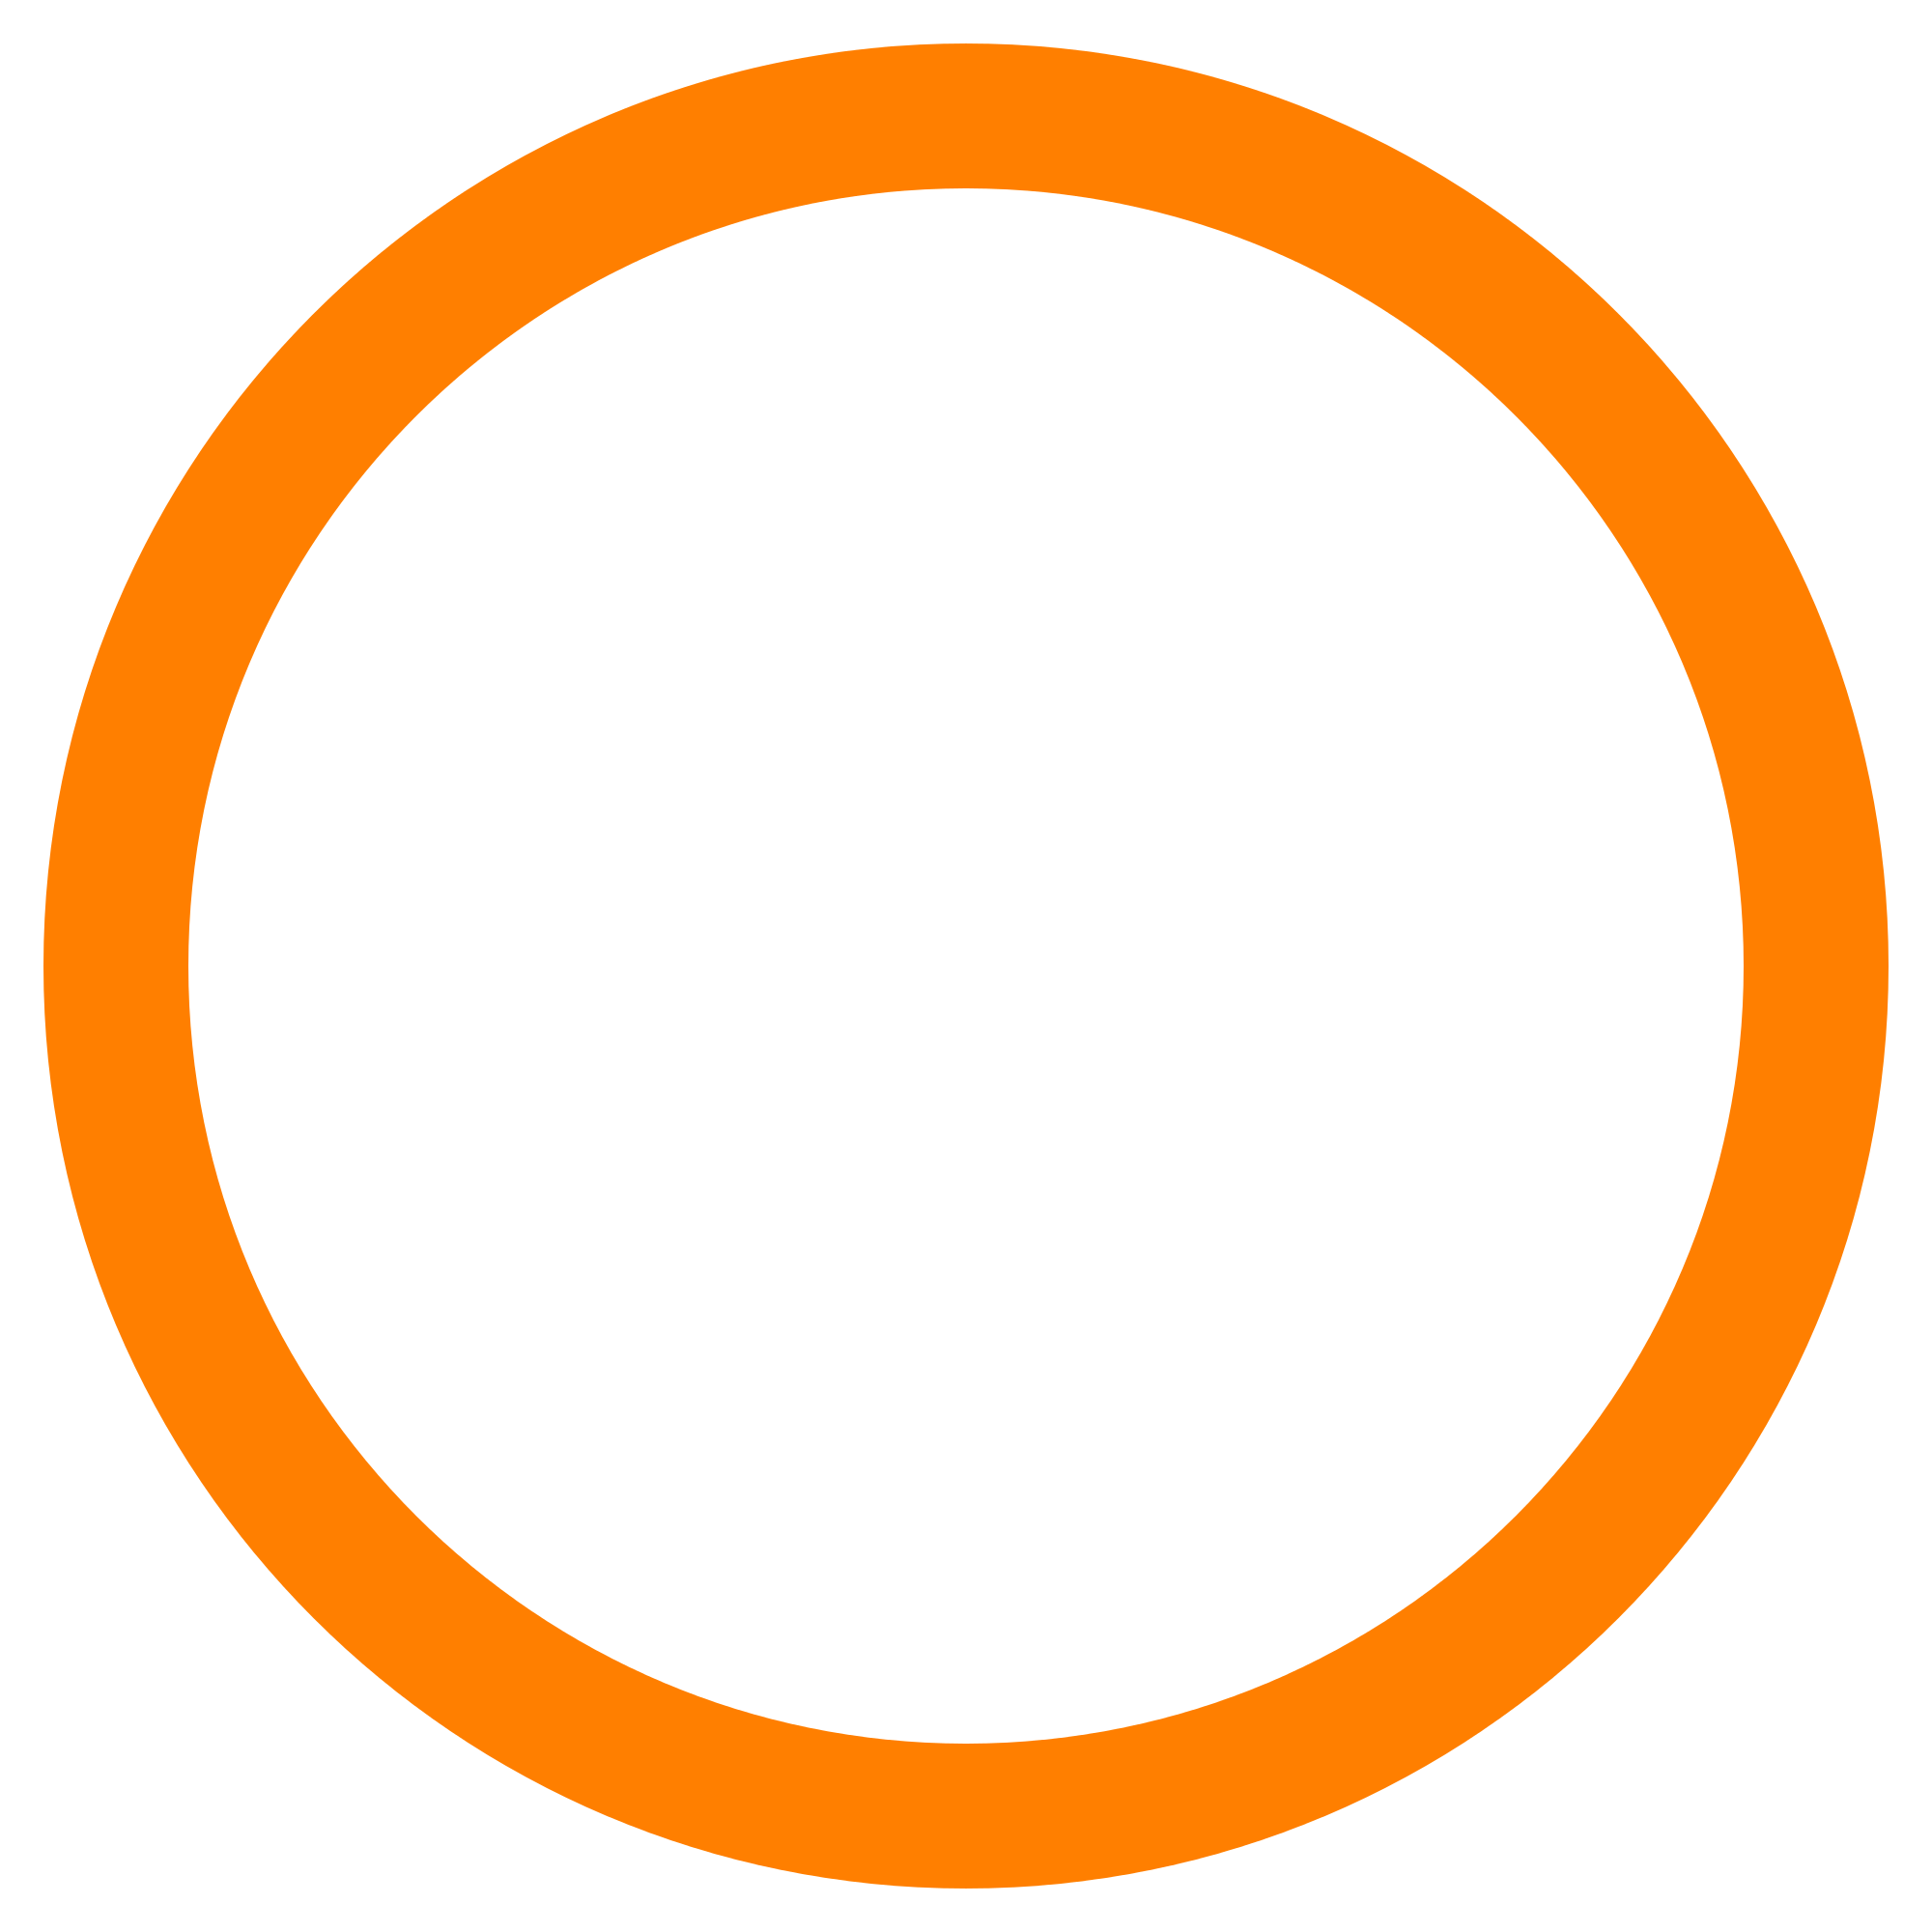 Oval clipart hollow. File orange circle svg